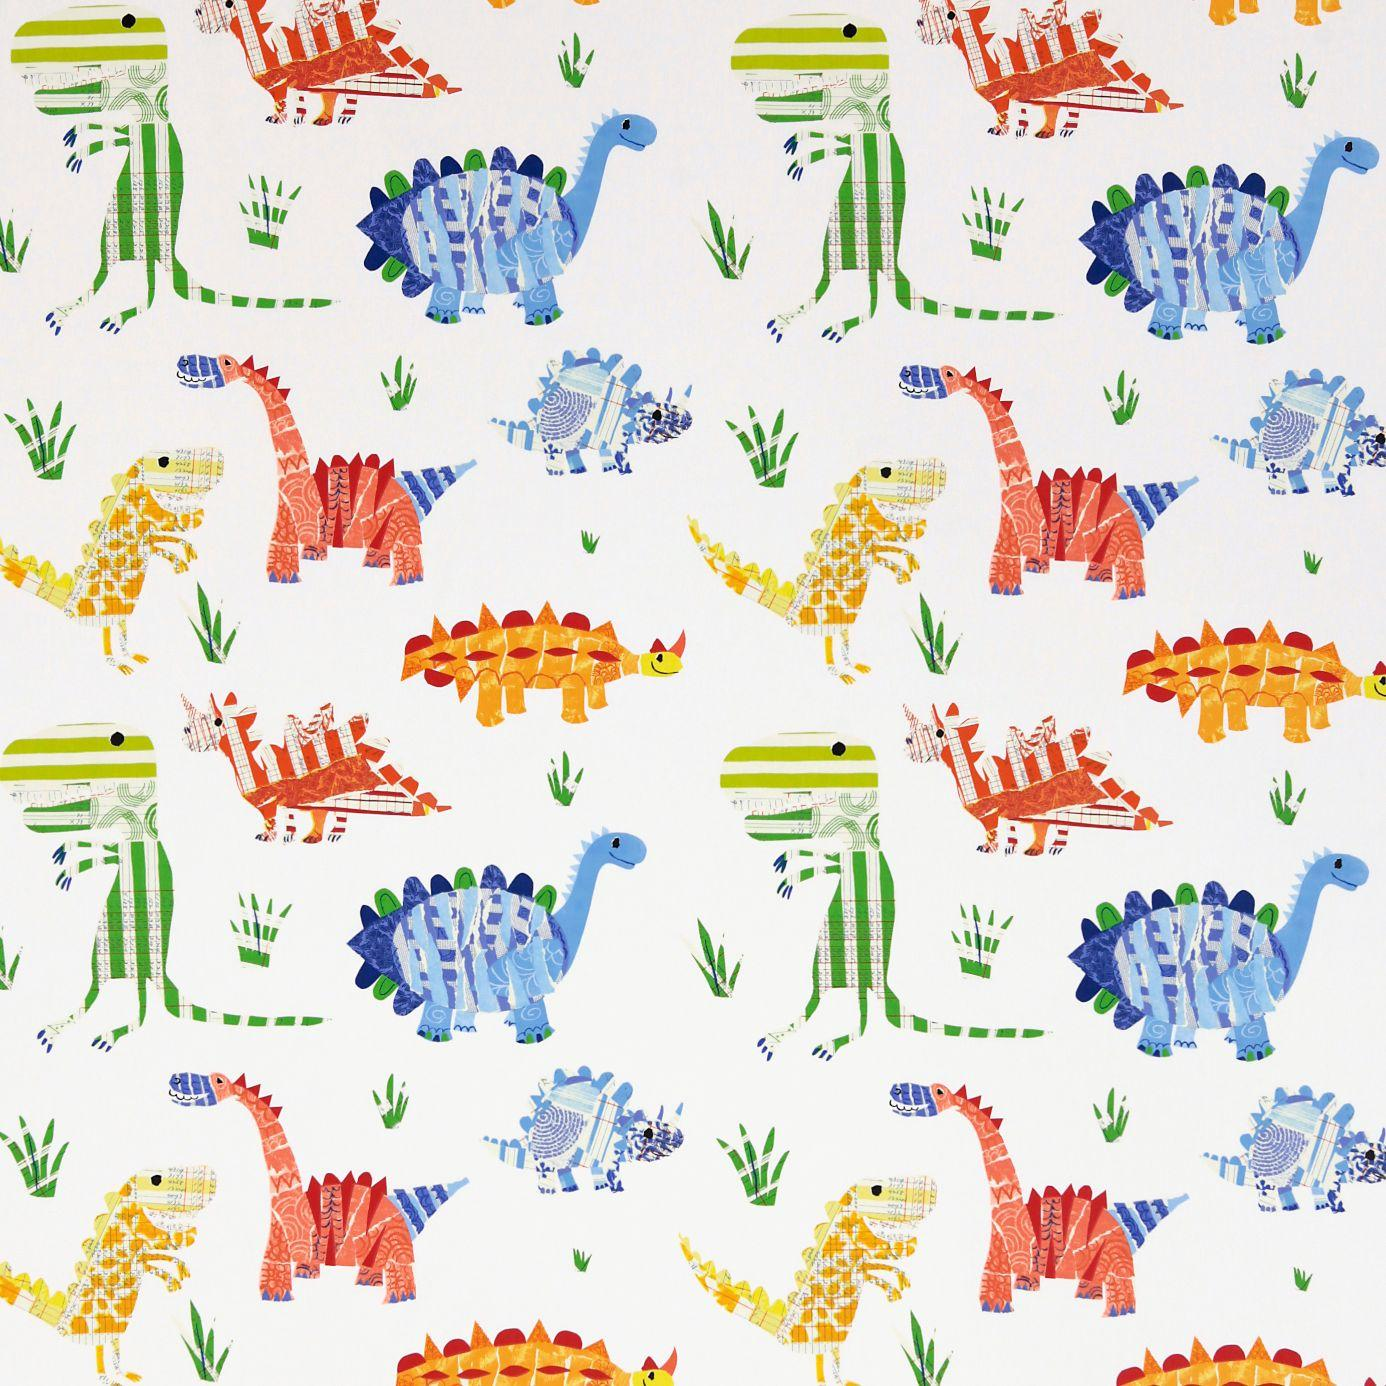 Jolly jurassic fabric aqua tangerine apple natural 3229 for Animal print fabric for kids